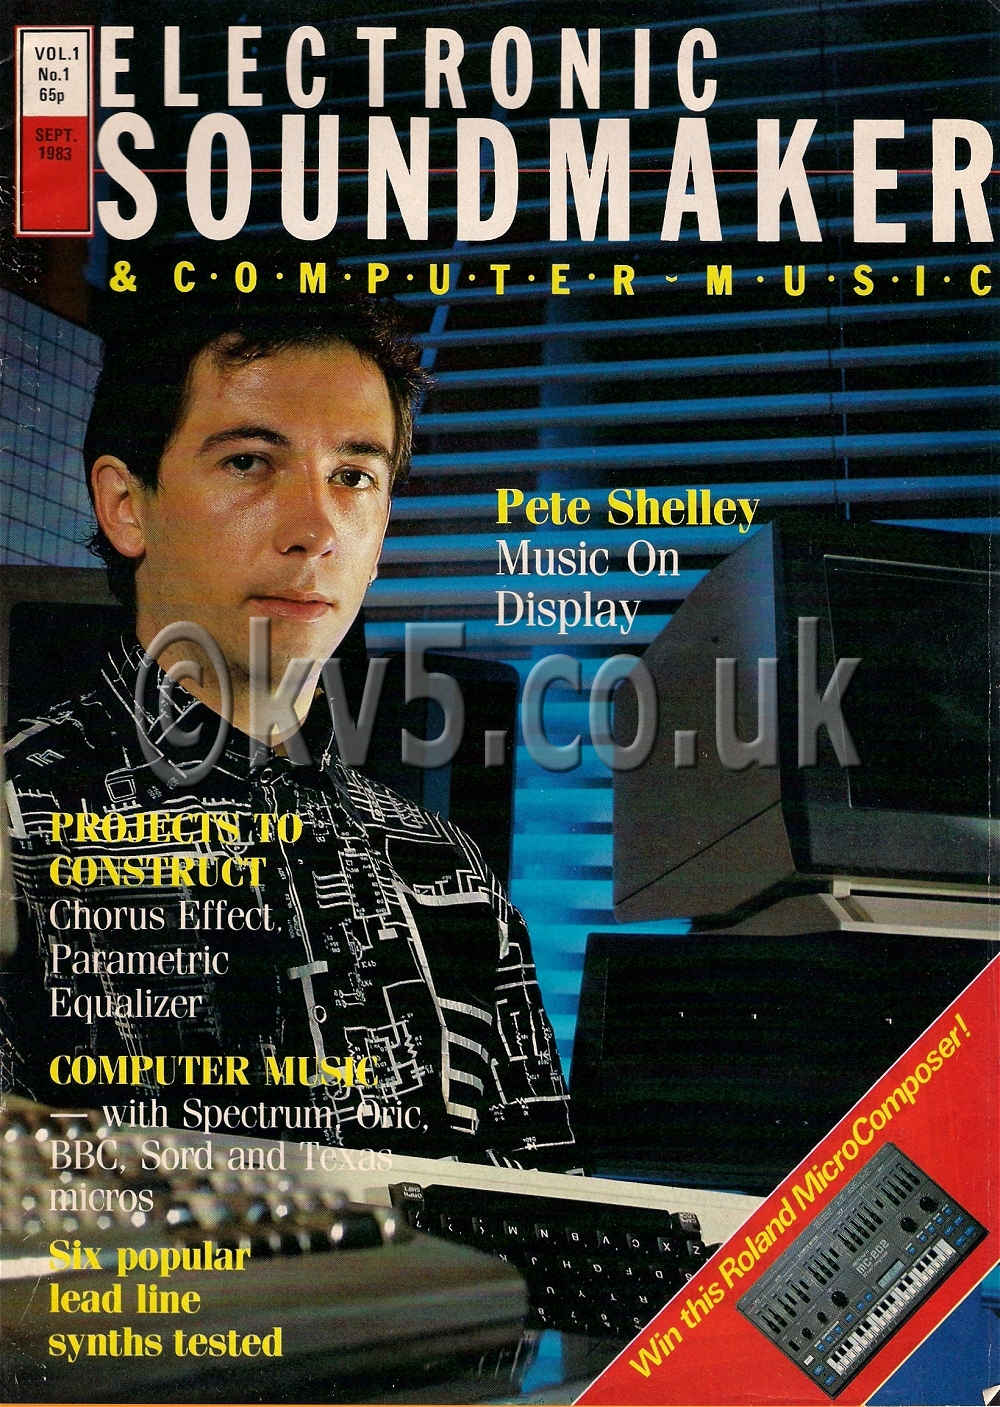 Electronic Soundmaker September 1983